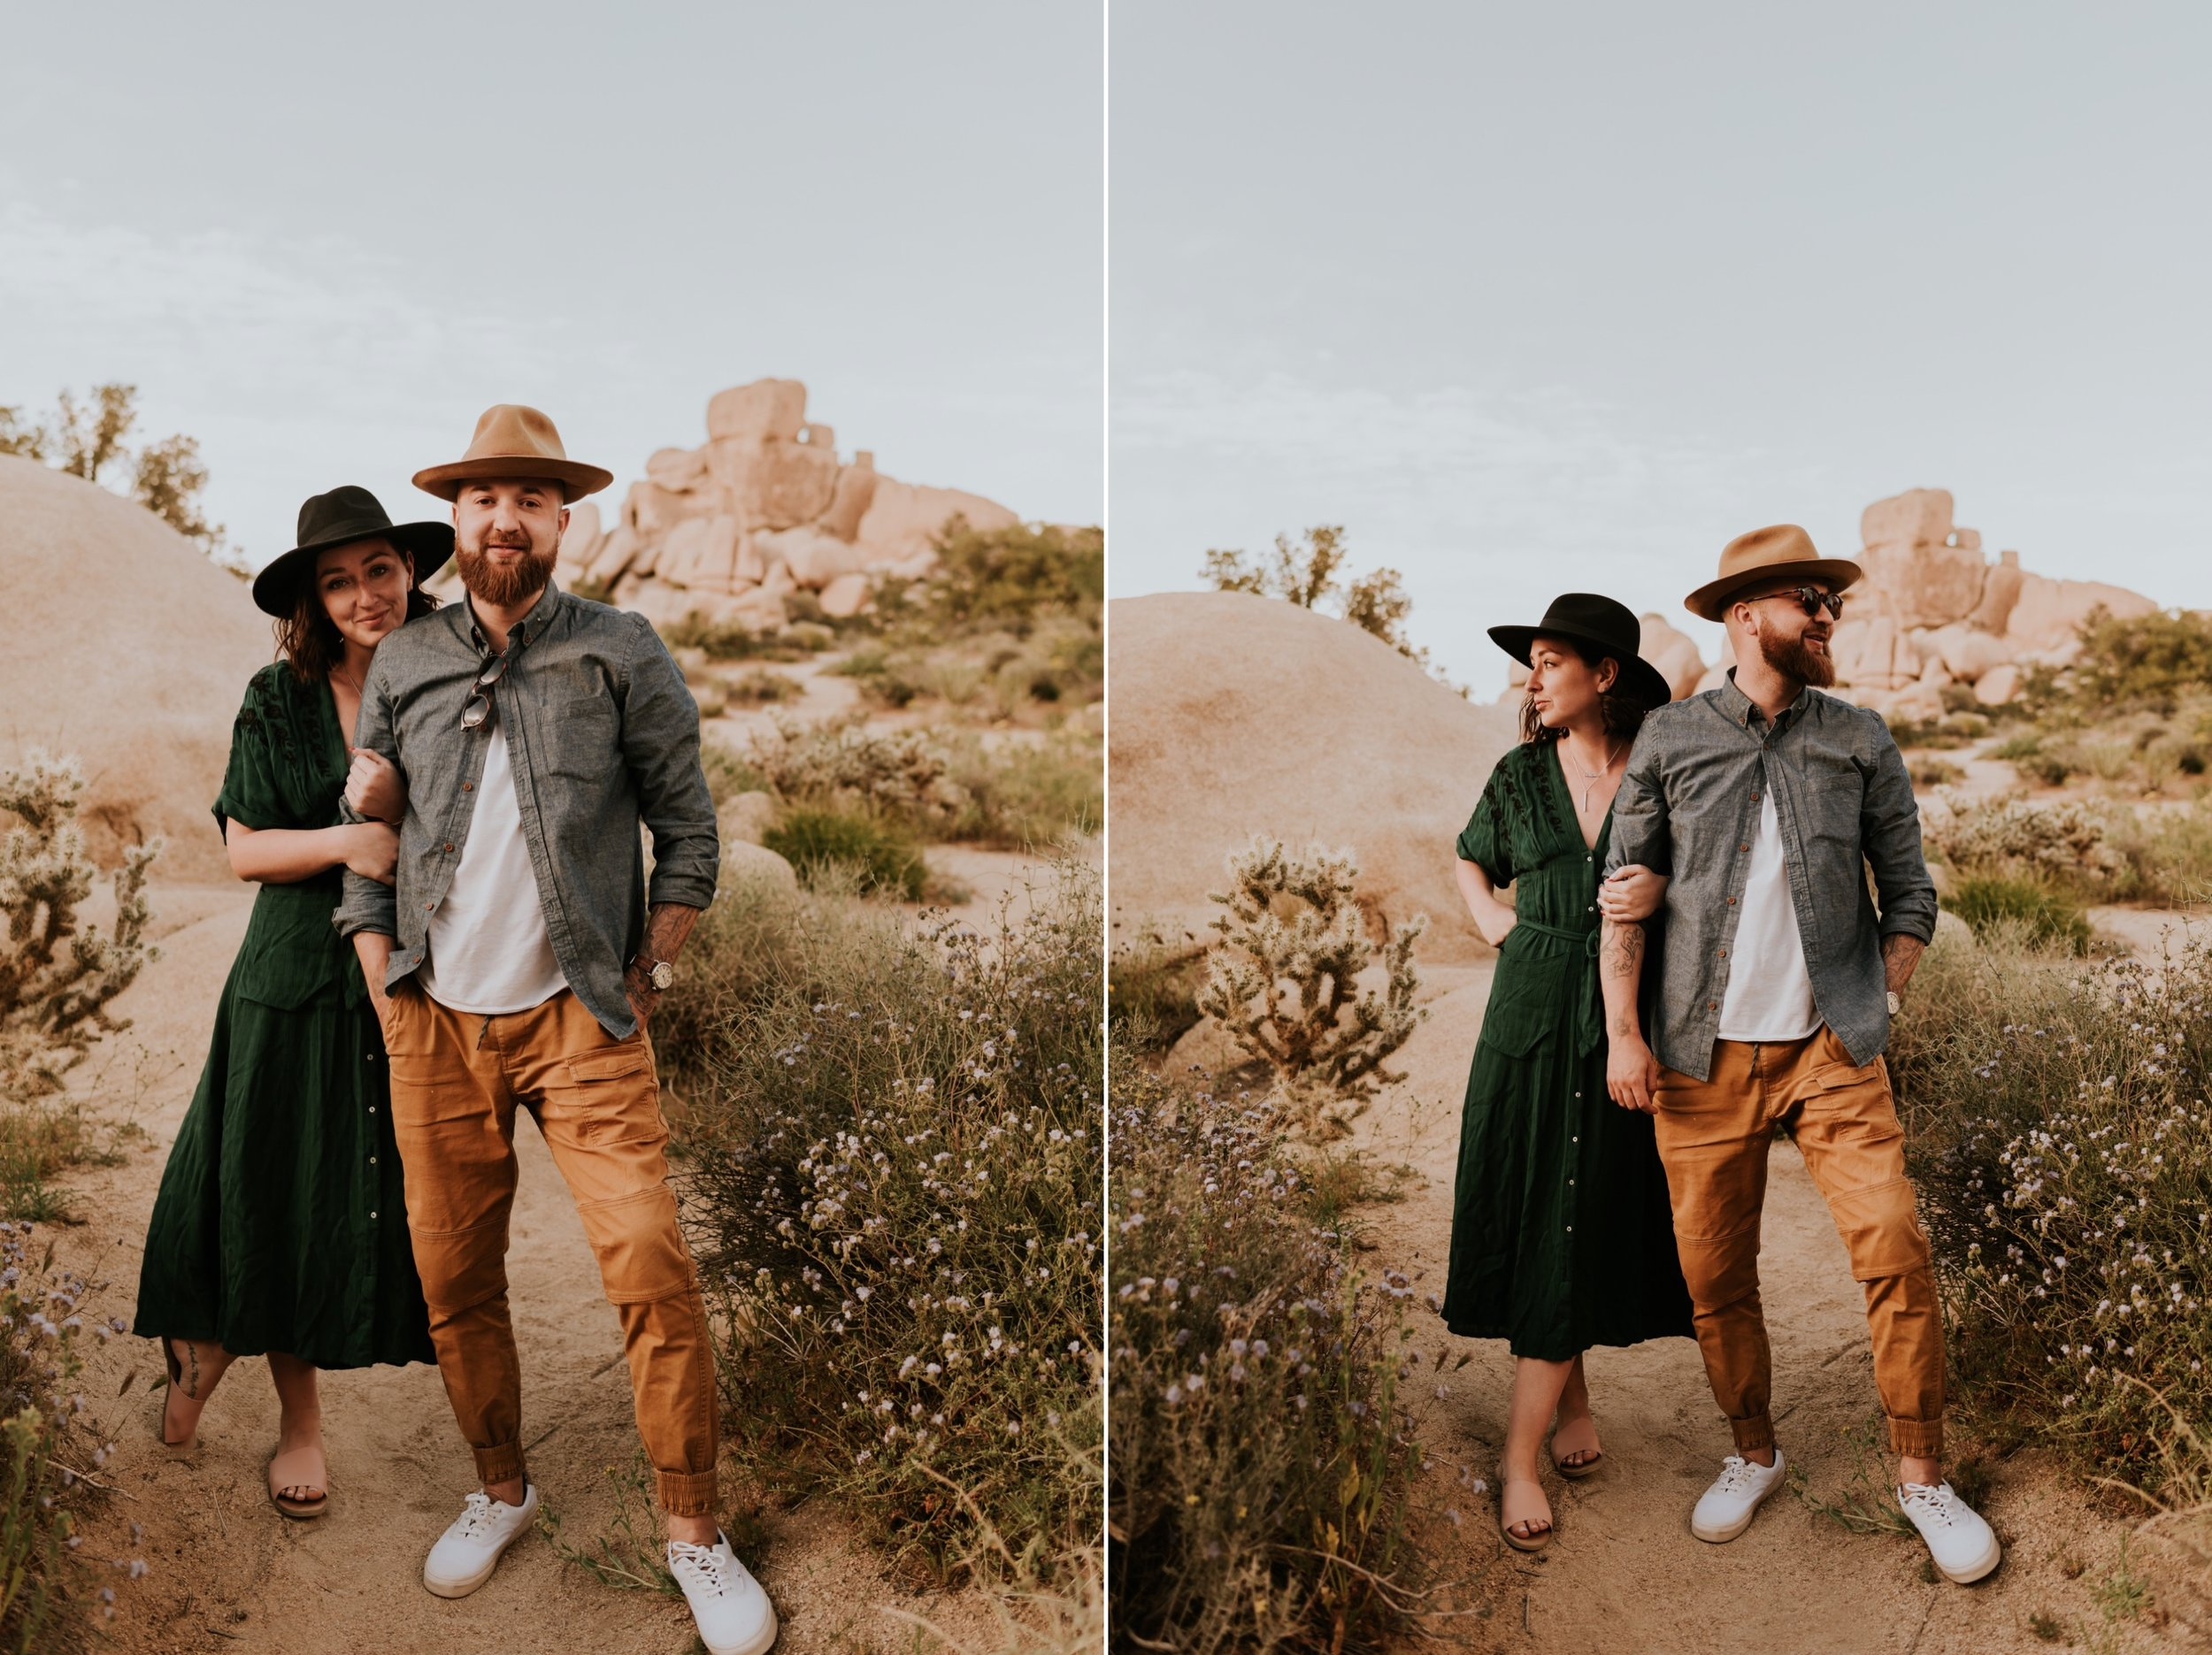 Couples Photoshoot in Joshua Tree National Park | Carrie Rogers Photography | Joshua Tree Engagement Session | Trendy Outfit Ideas for Engagement Photos | Joshua Tree Wedding Photographer